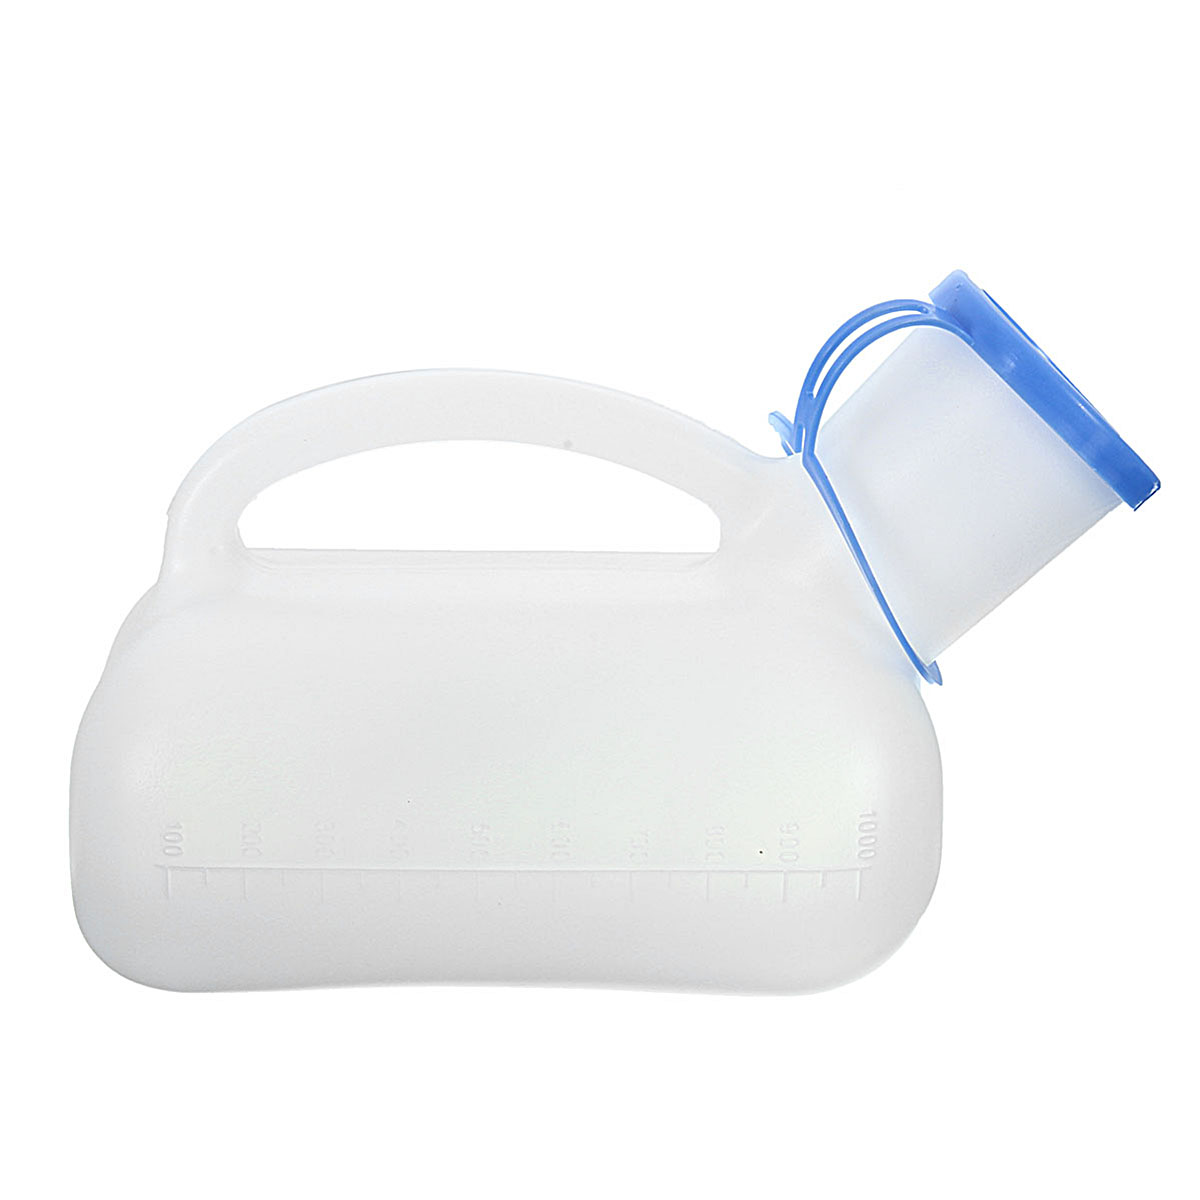 IPRee™ 1000ml Female Male Portable Mobile Urinal Mini Plastic Toilet With Cover Travel Camping